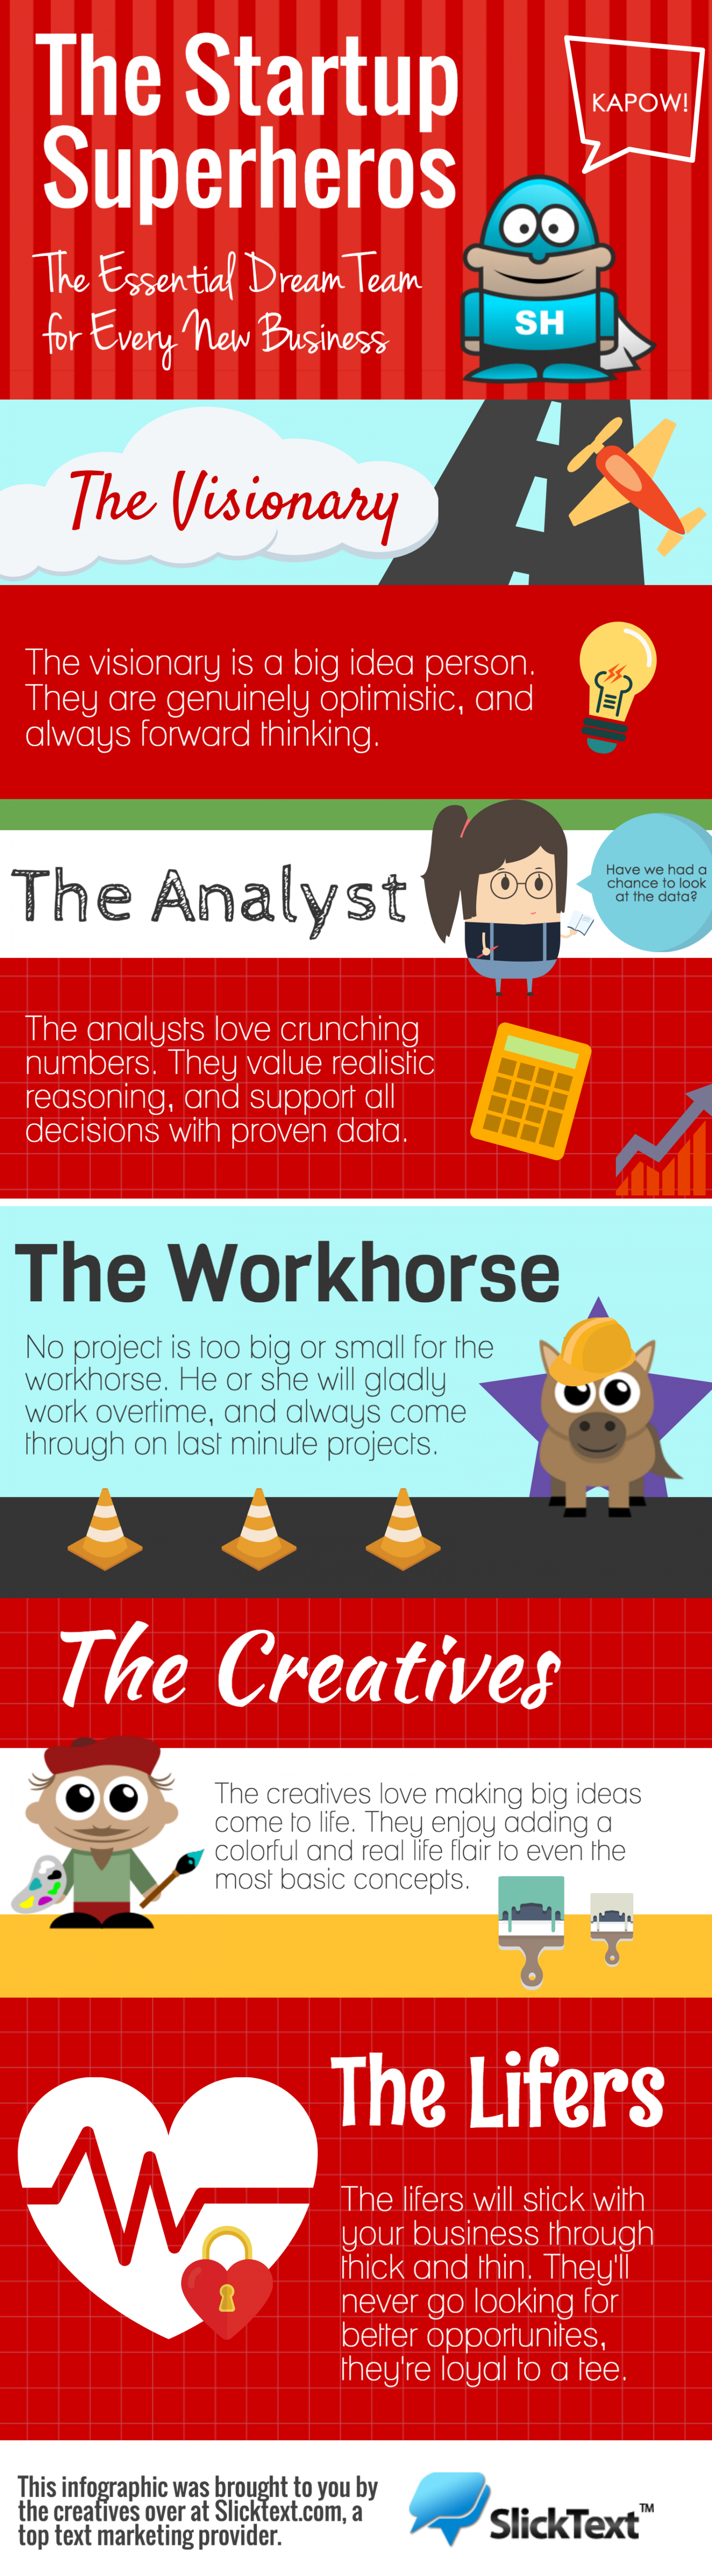 Startup Superheroes: The Essential Dream Team for Every New Business Infographic